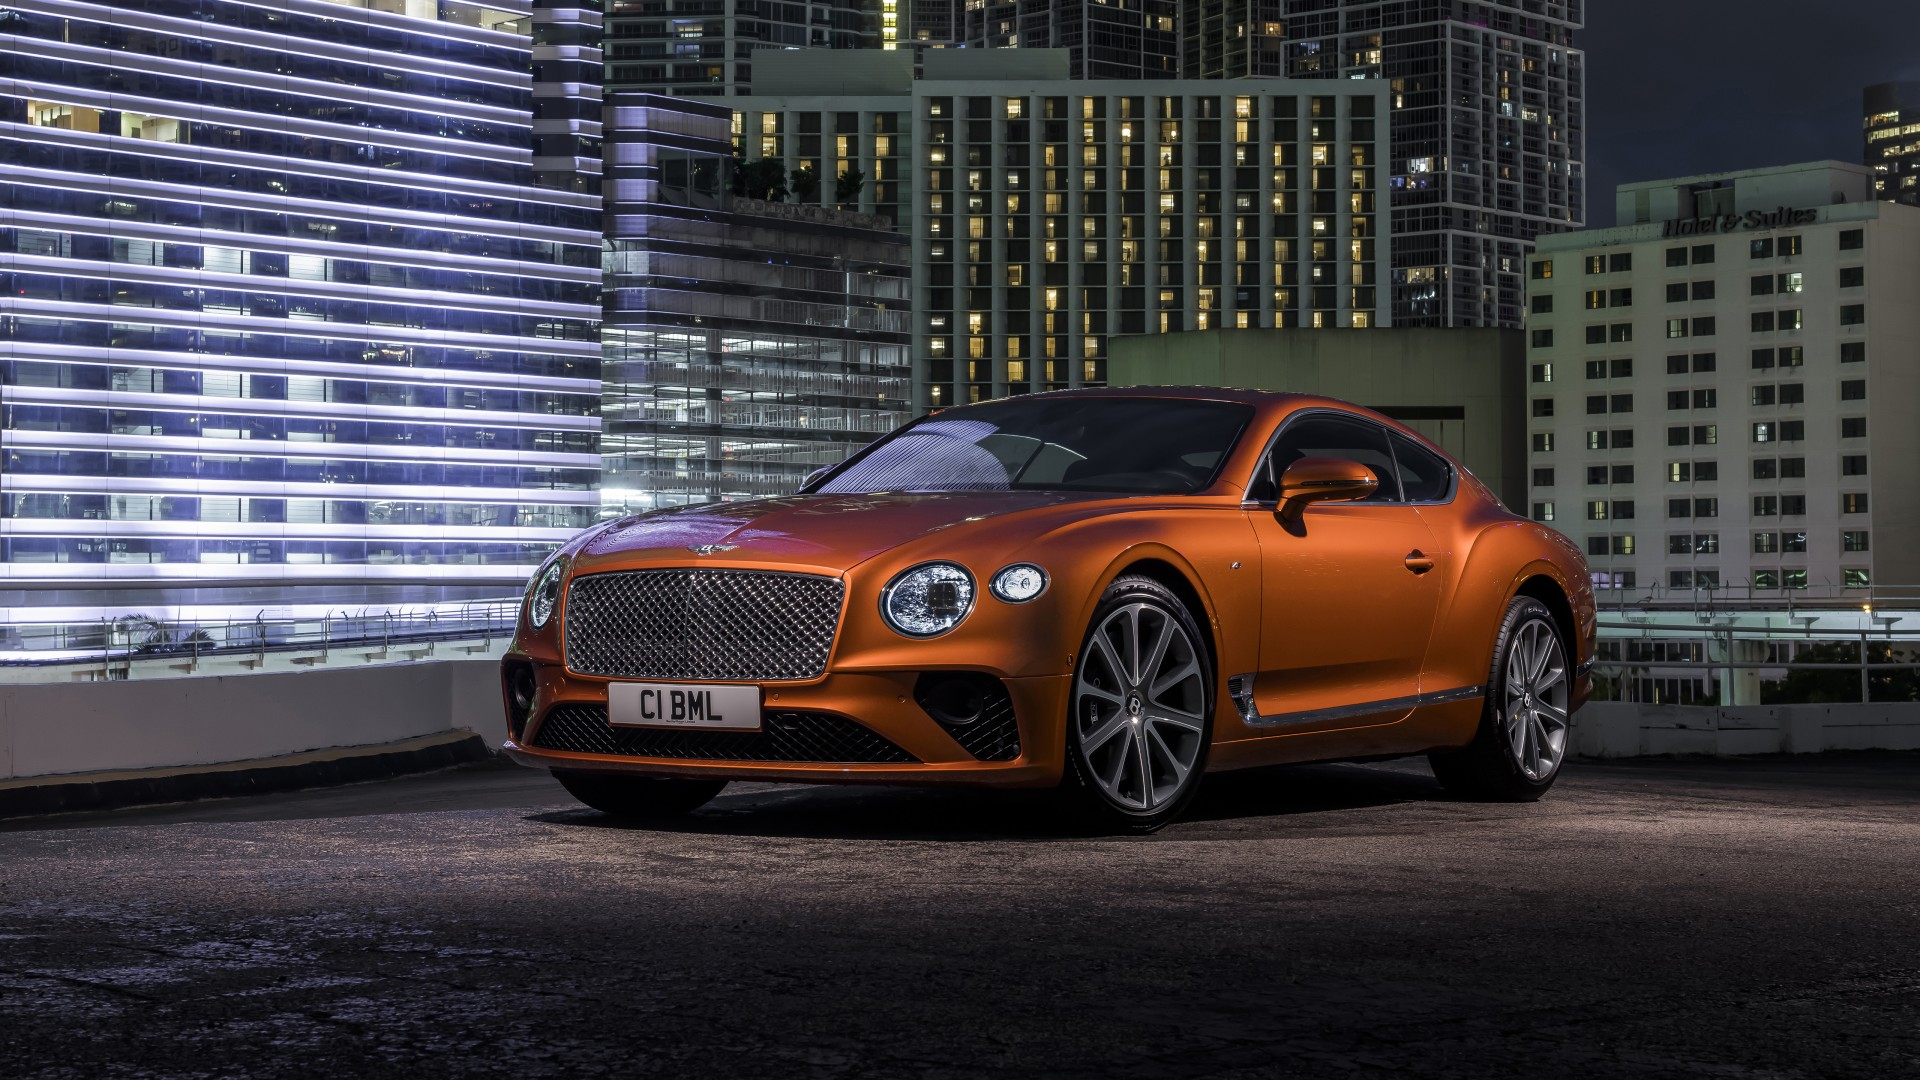 Hd Wallpaper Car Widescreen Bentley Continental Gt V8 2019 4k Wallpaper Hd Car